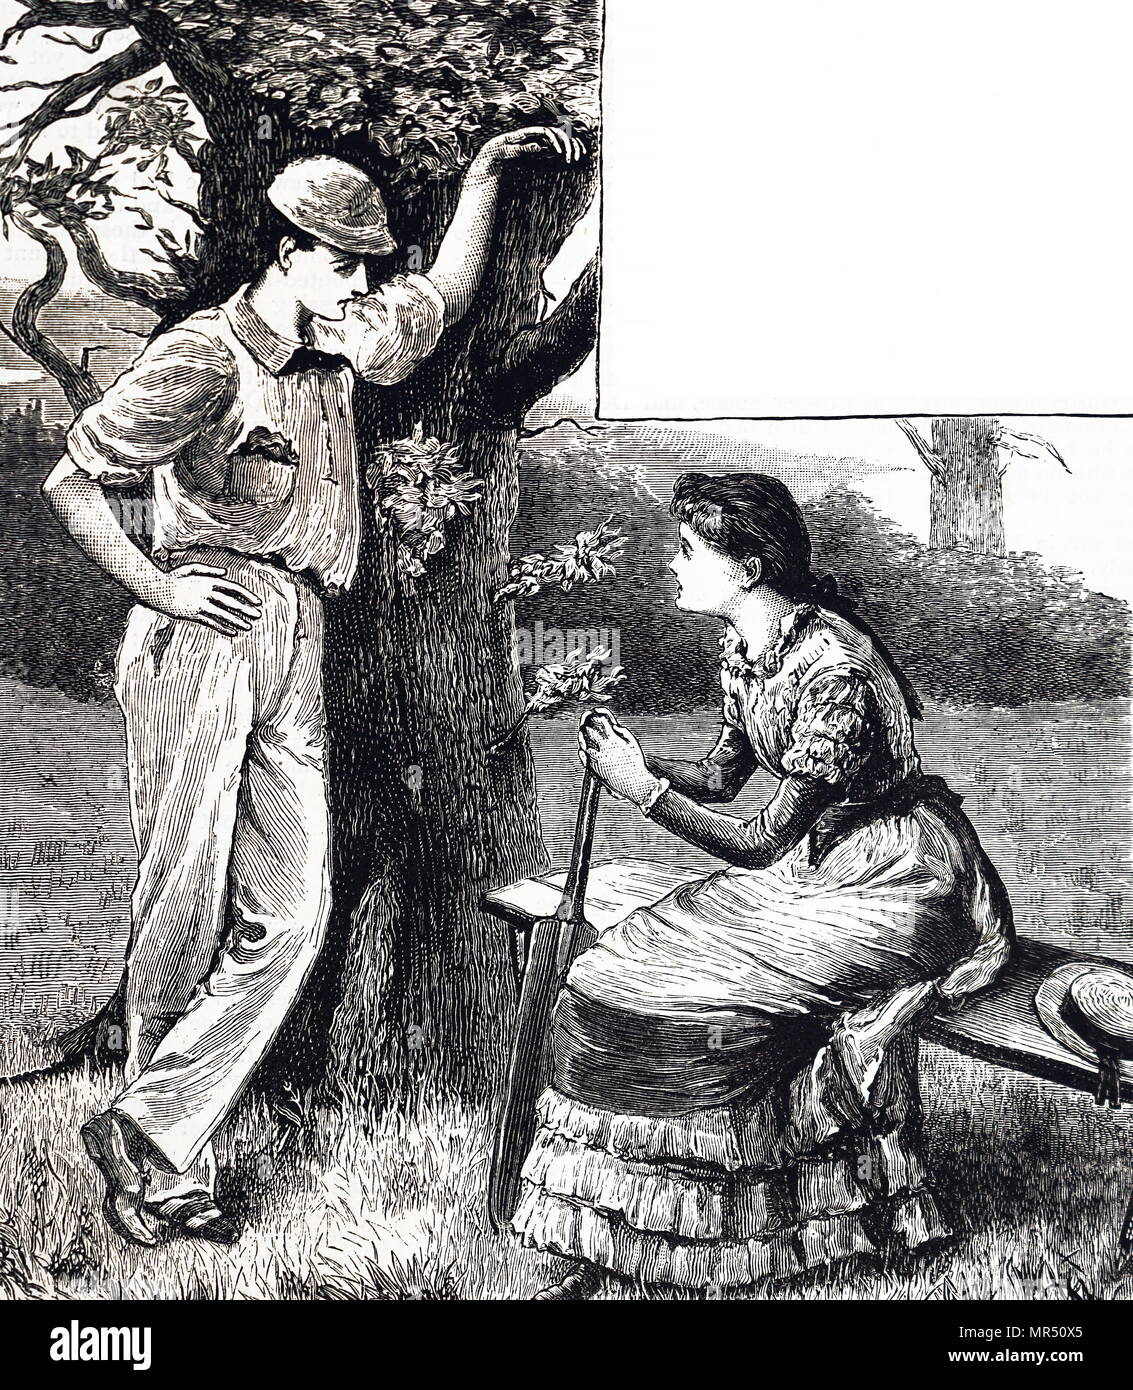 Illustration depicting a cricketer speaking to his lover, at the end of a game. Dated 19th century - Stock Image